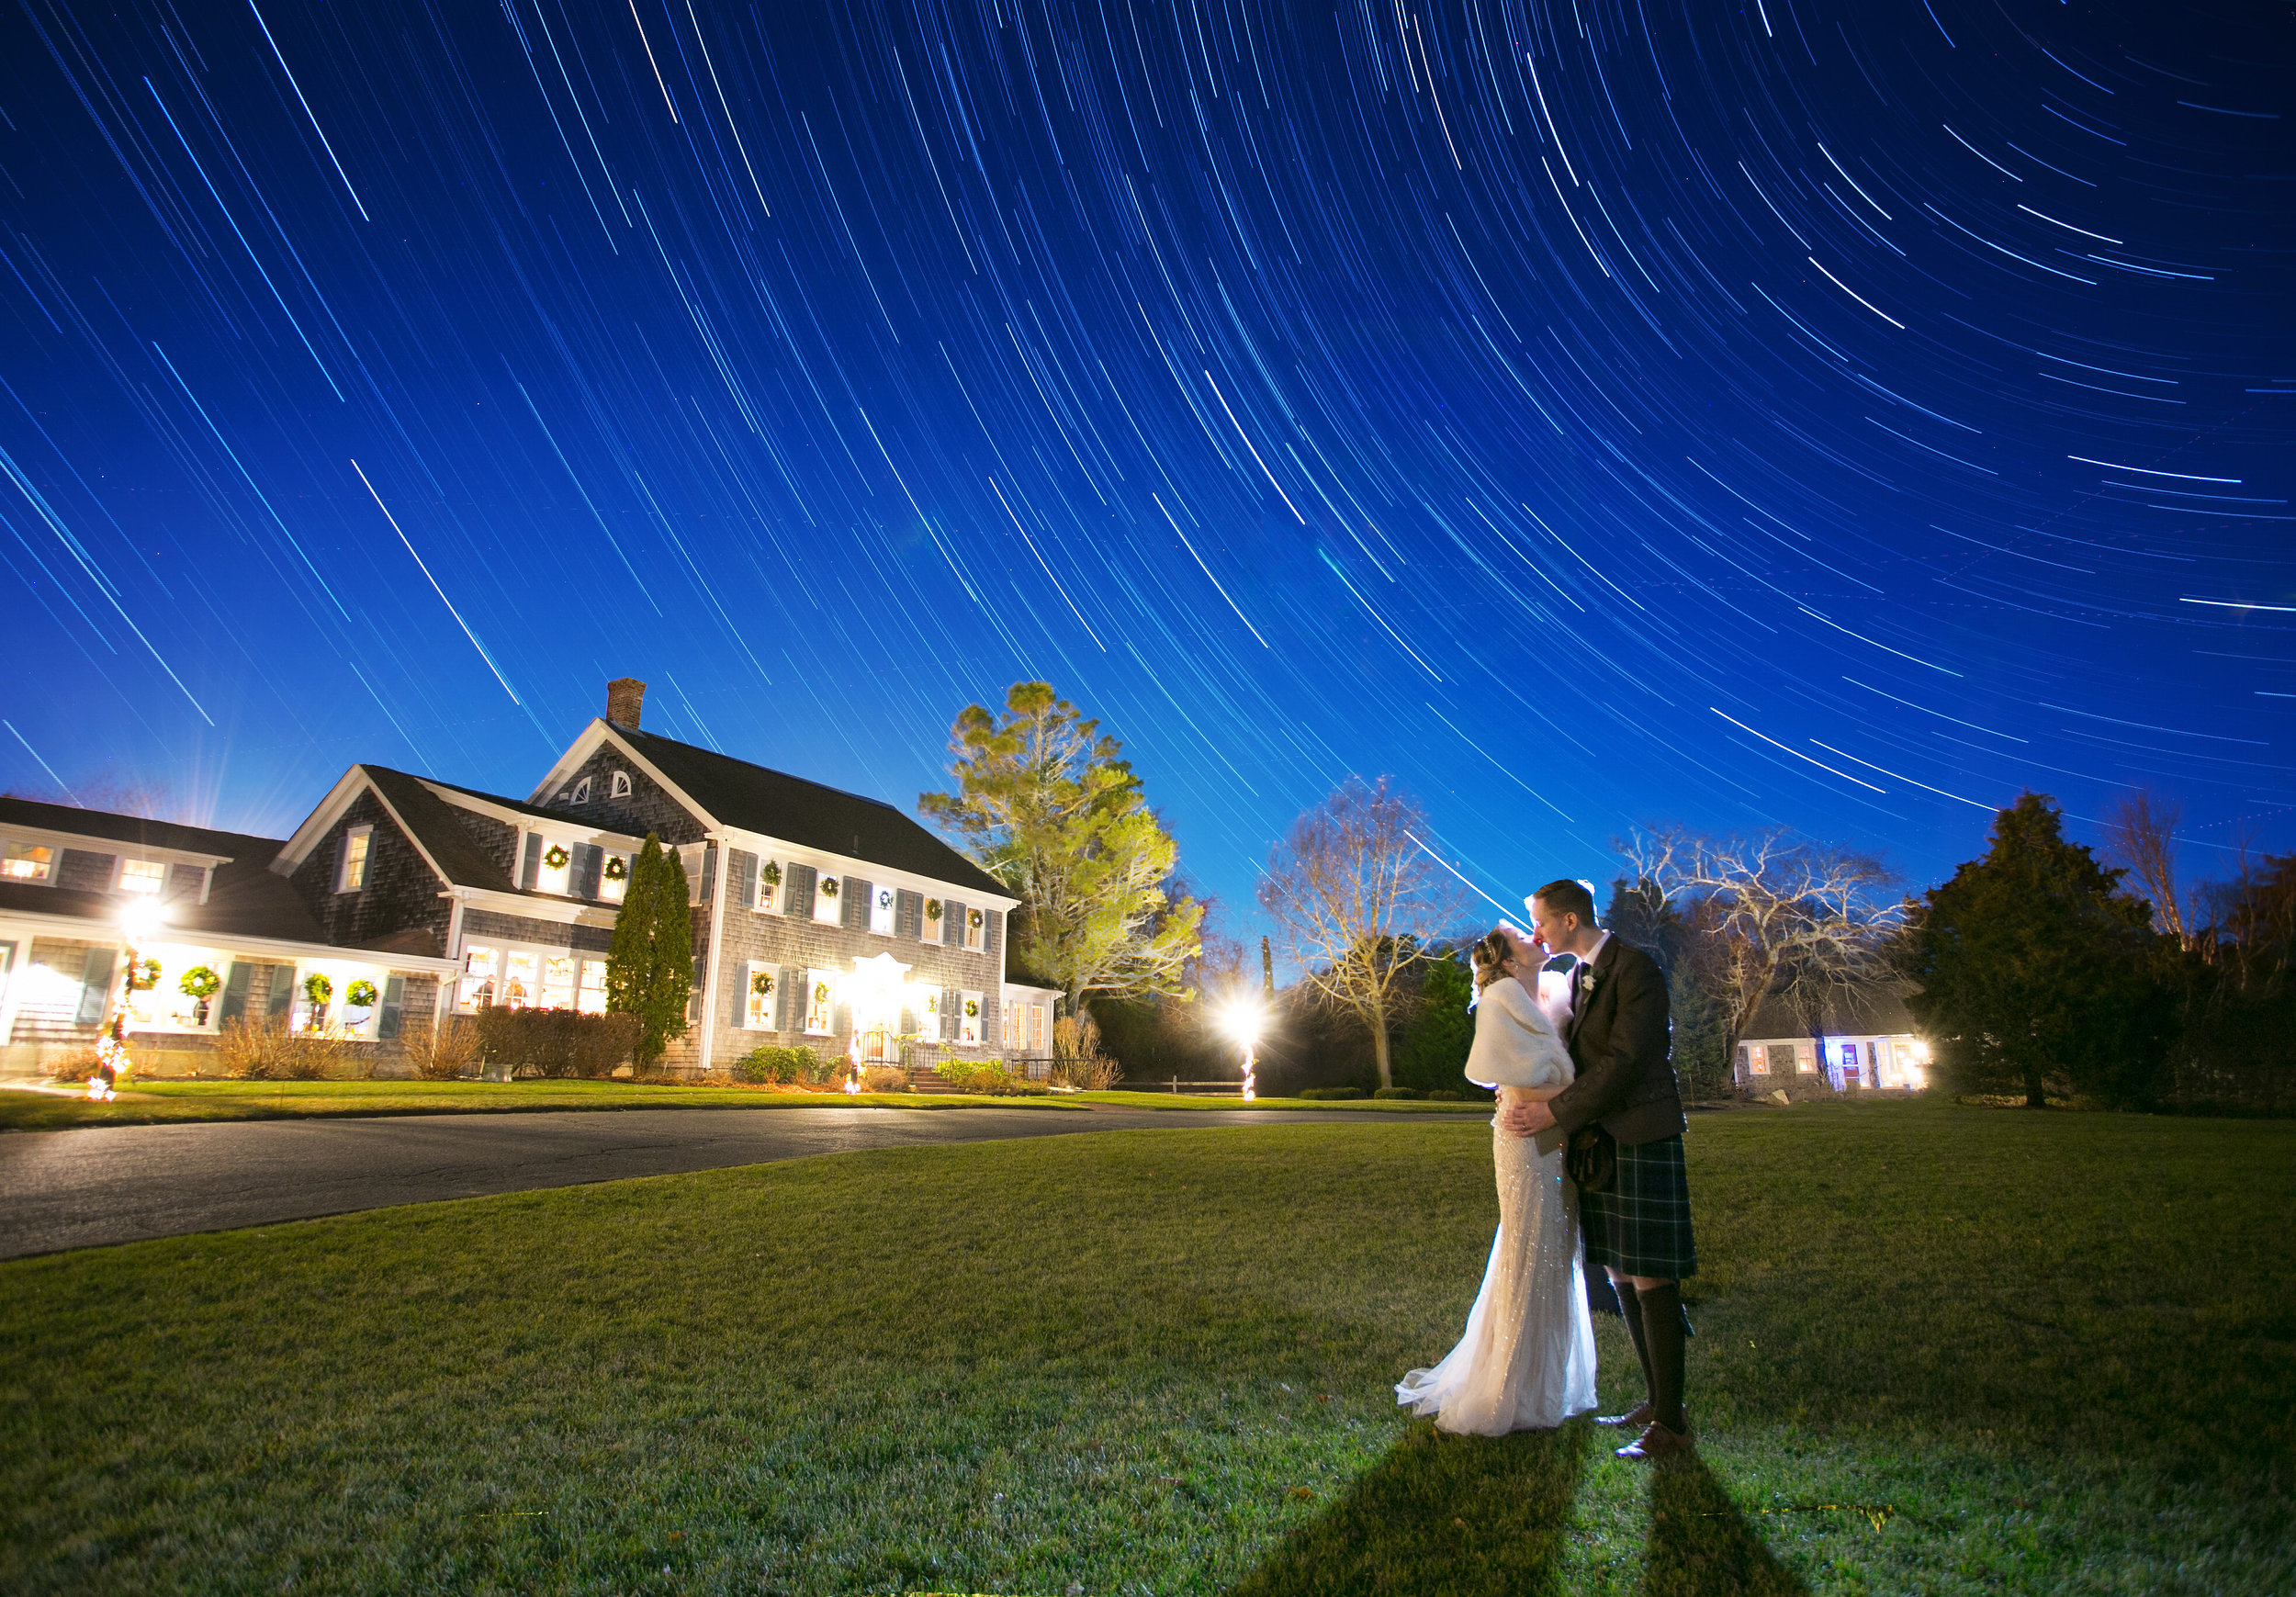 dennis-inn-startrails-chriscook.jpg